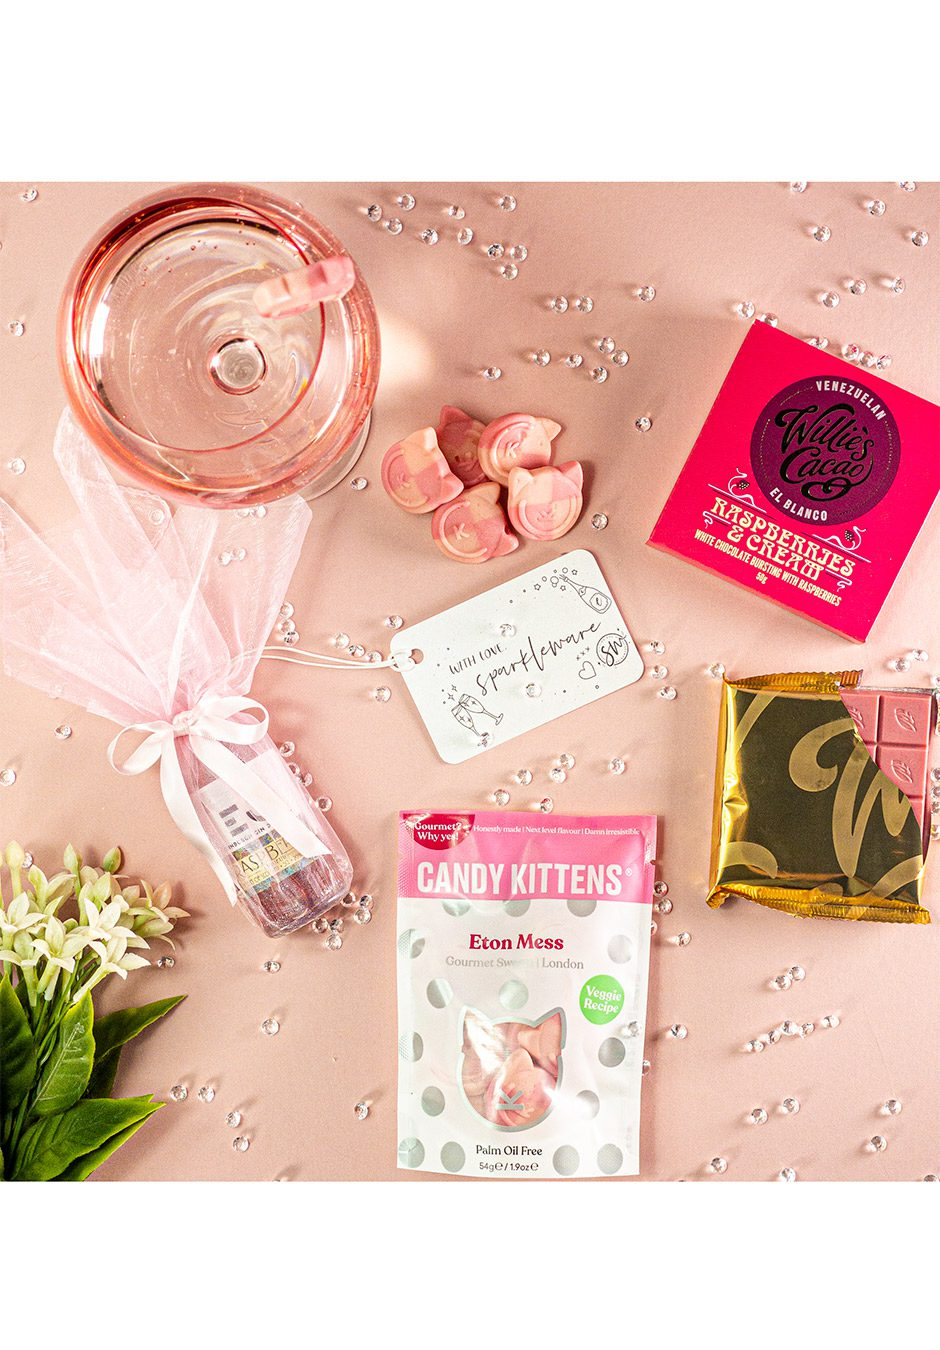 Berrylicious Pink Gin   Sparkleware Gift Set   KeiCo Drinks